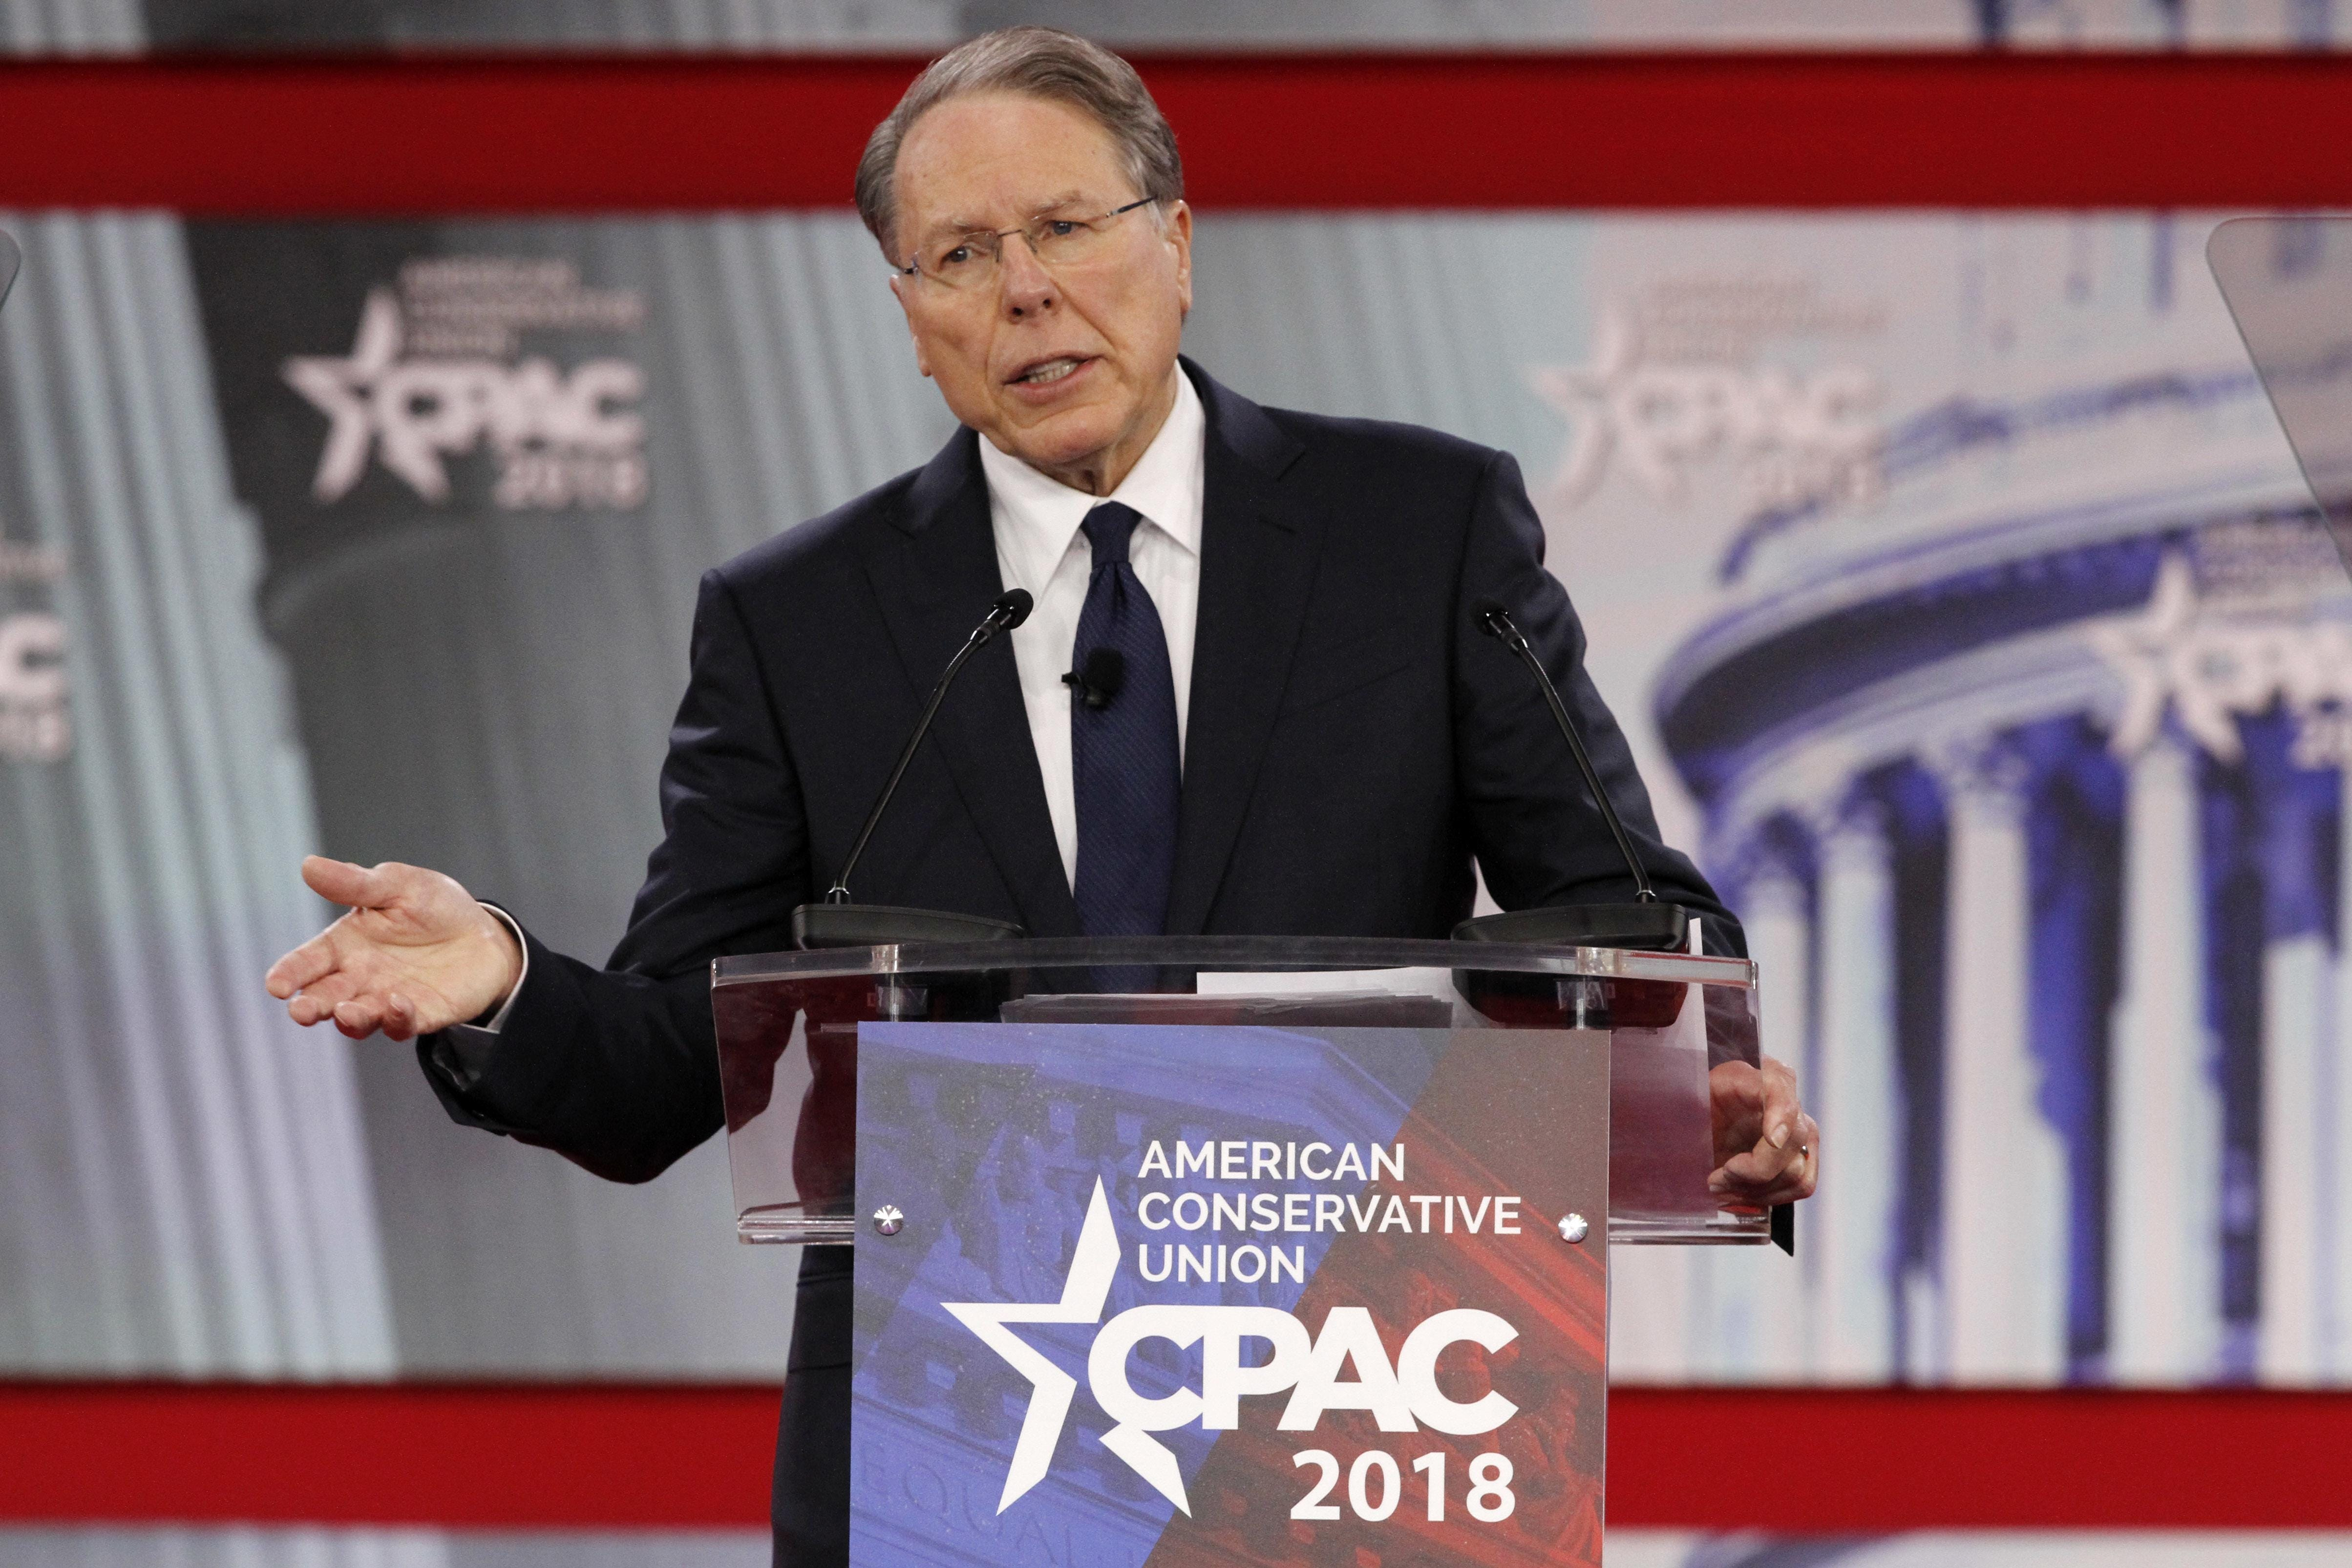 NRA leader sought refuge aboard yacht after public outrage over school shootings 1